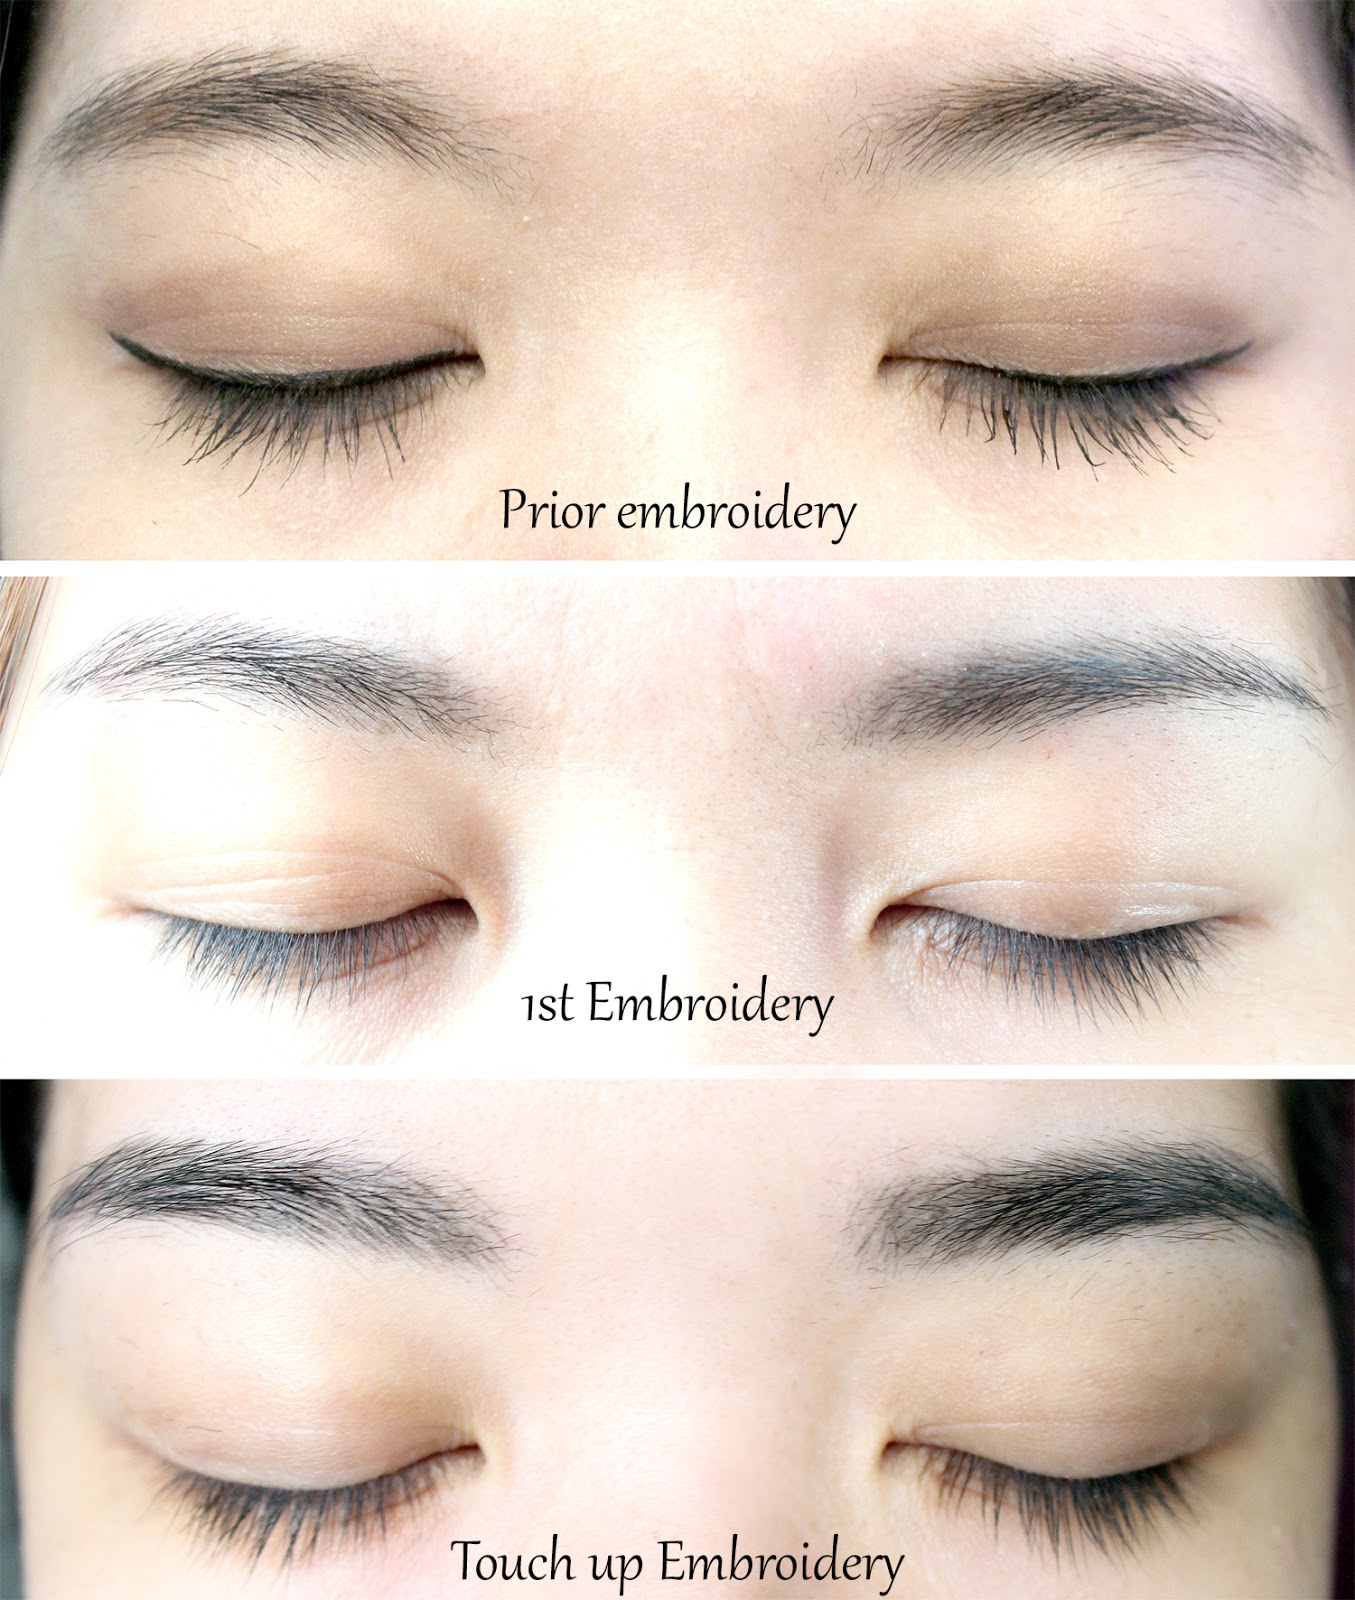 Eyebrow embroidery review for 1 salon eyebrow embroidery